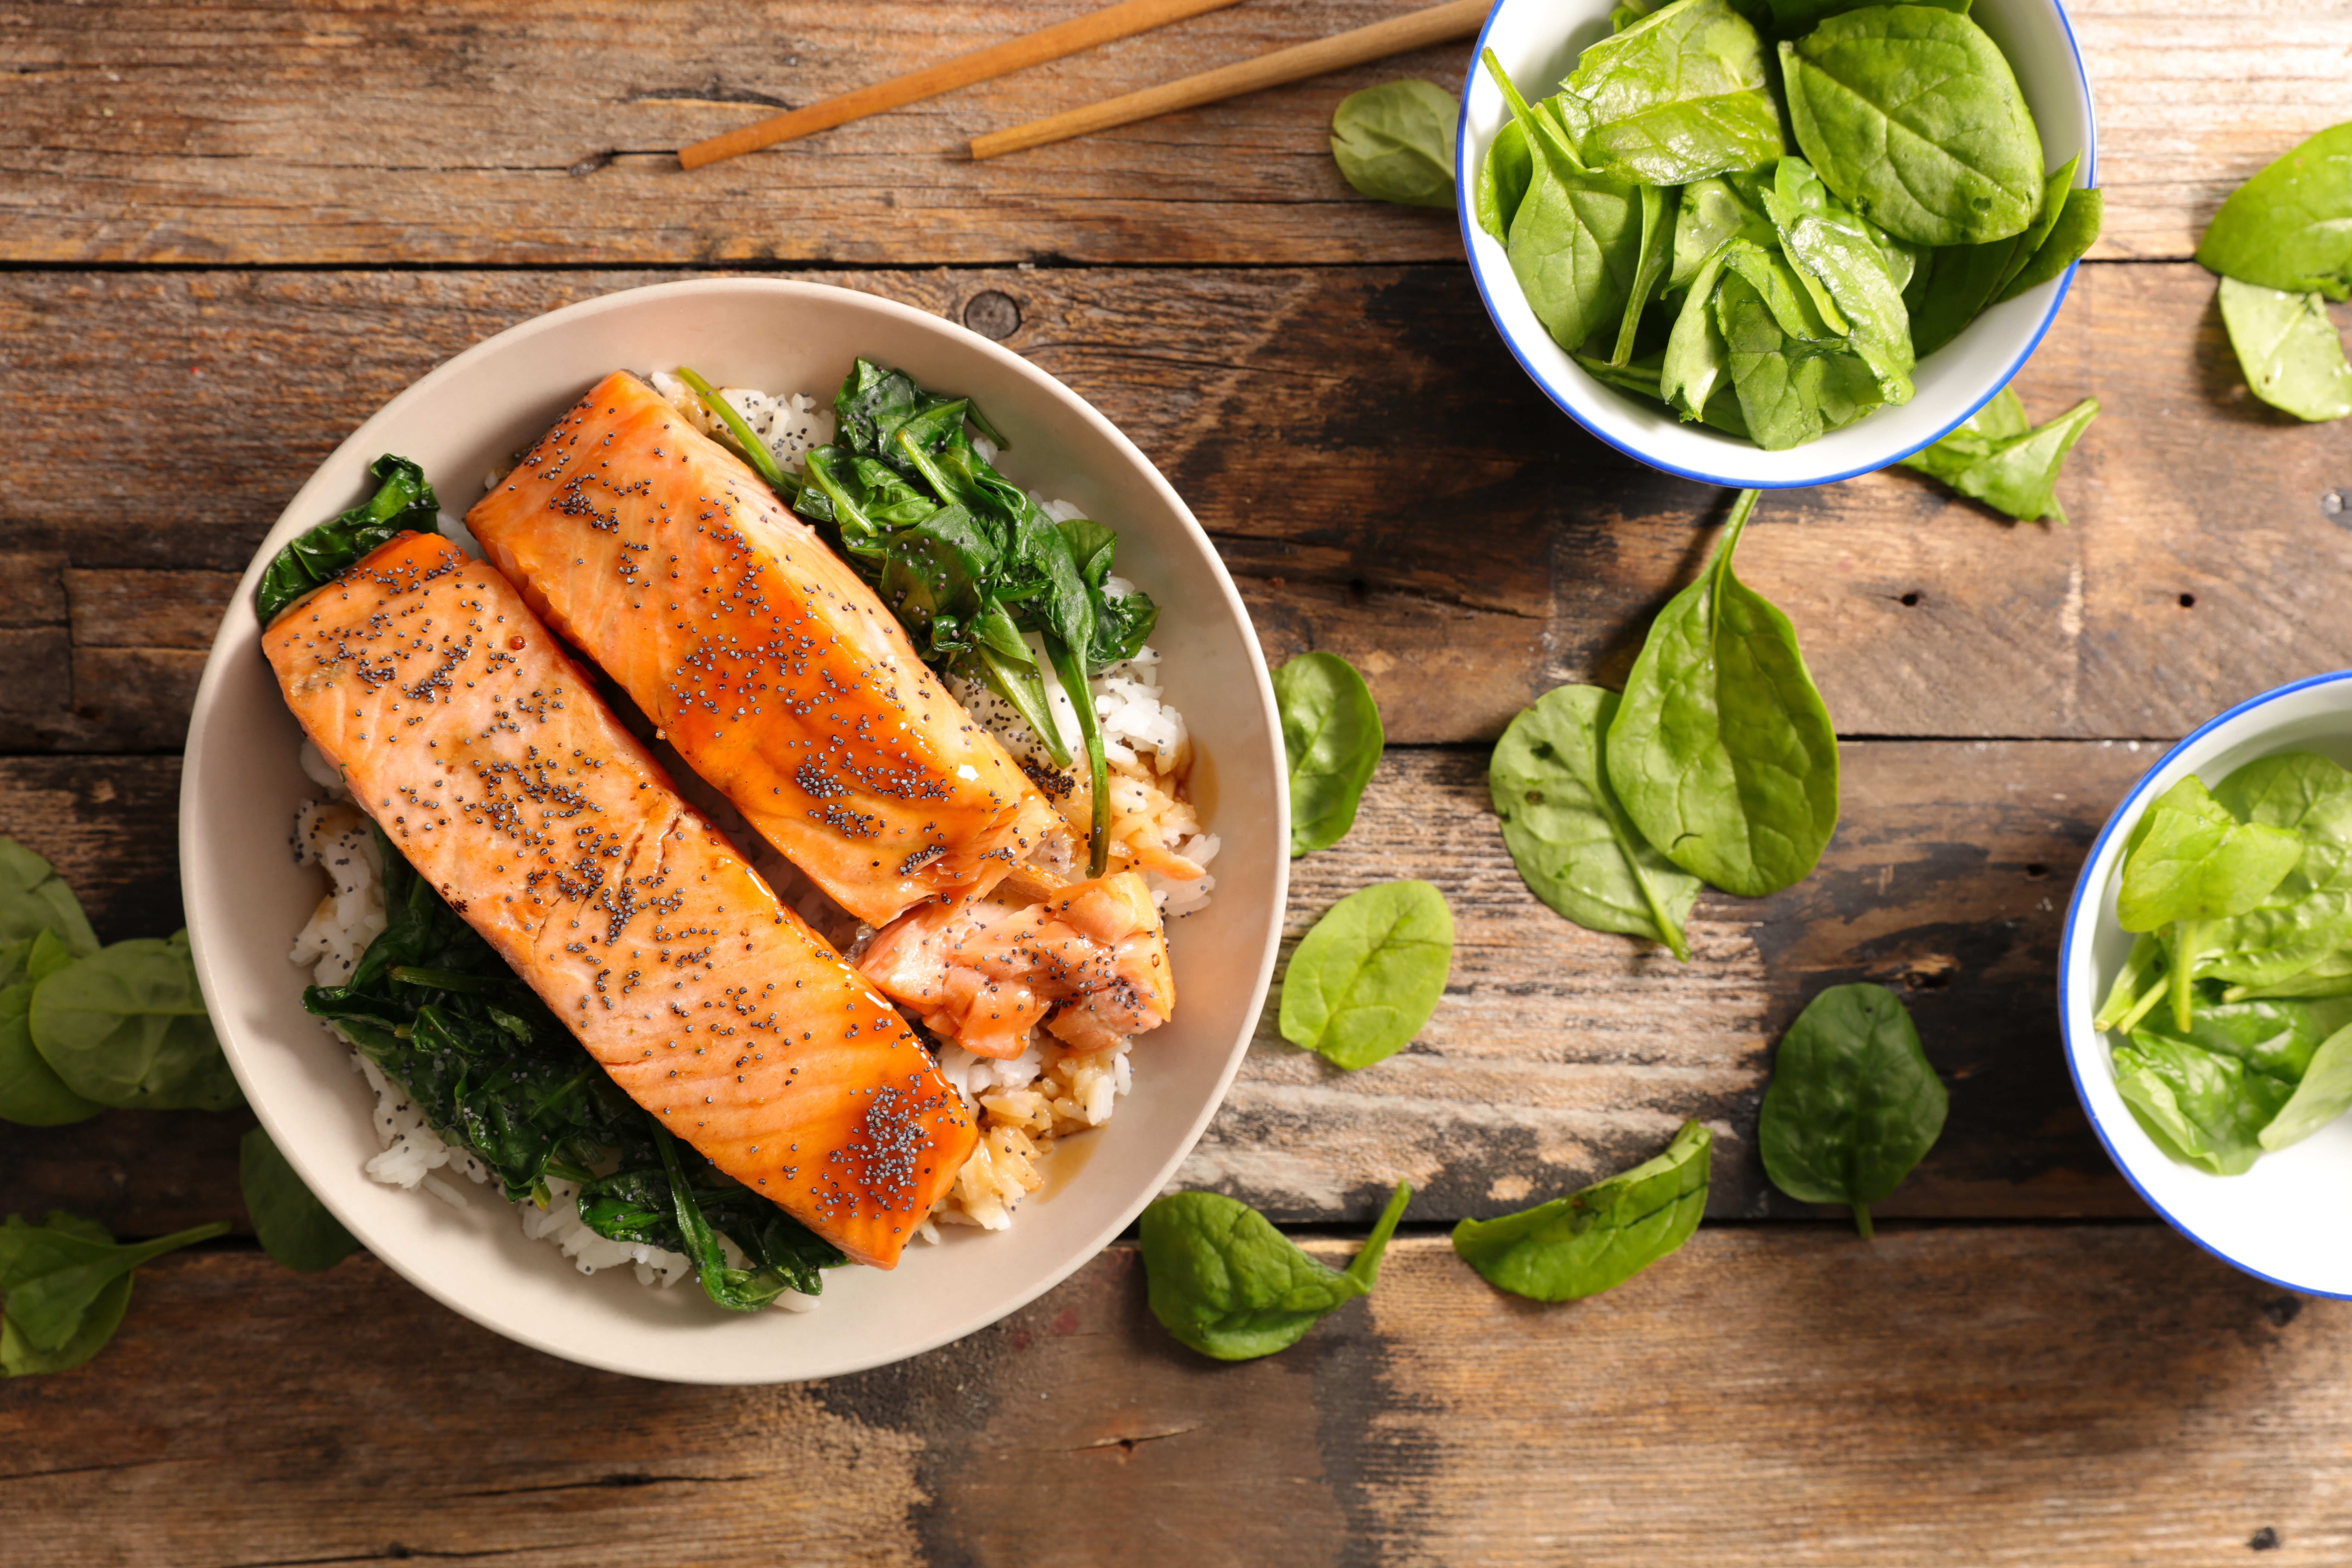 Fish, food to boost your mood, food to improve your mood